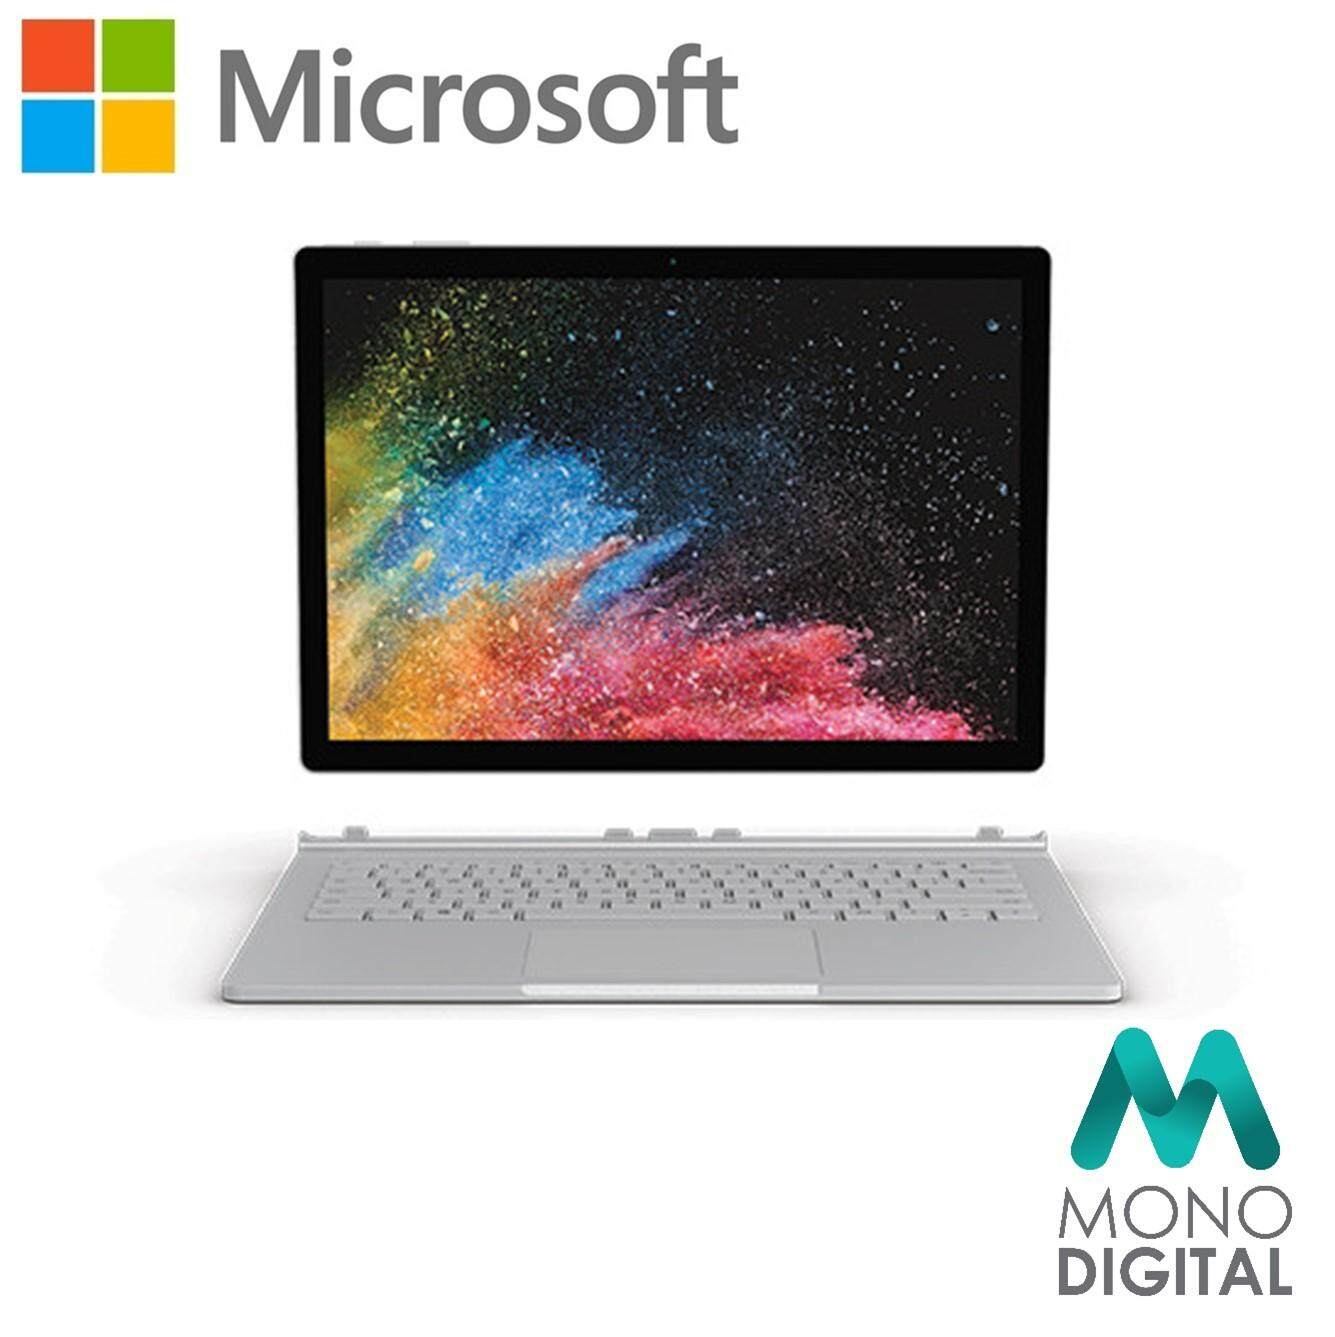 Microsoft Surface Book 2 13 Core i7 / 256GB GTX1050 2GD5 / 8GB RAM Window 10 Pro (HN4-00030) Malaysia